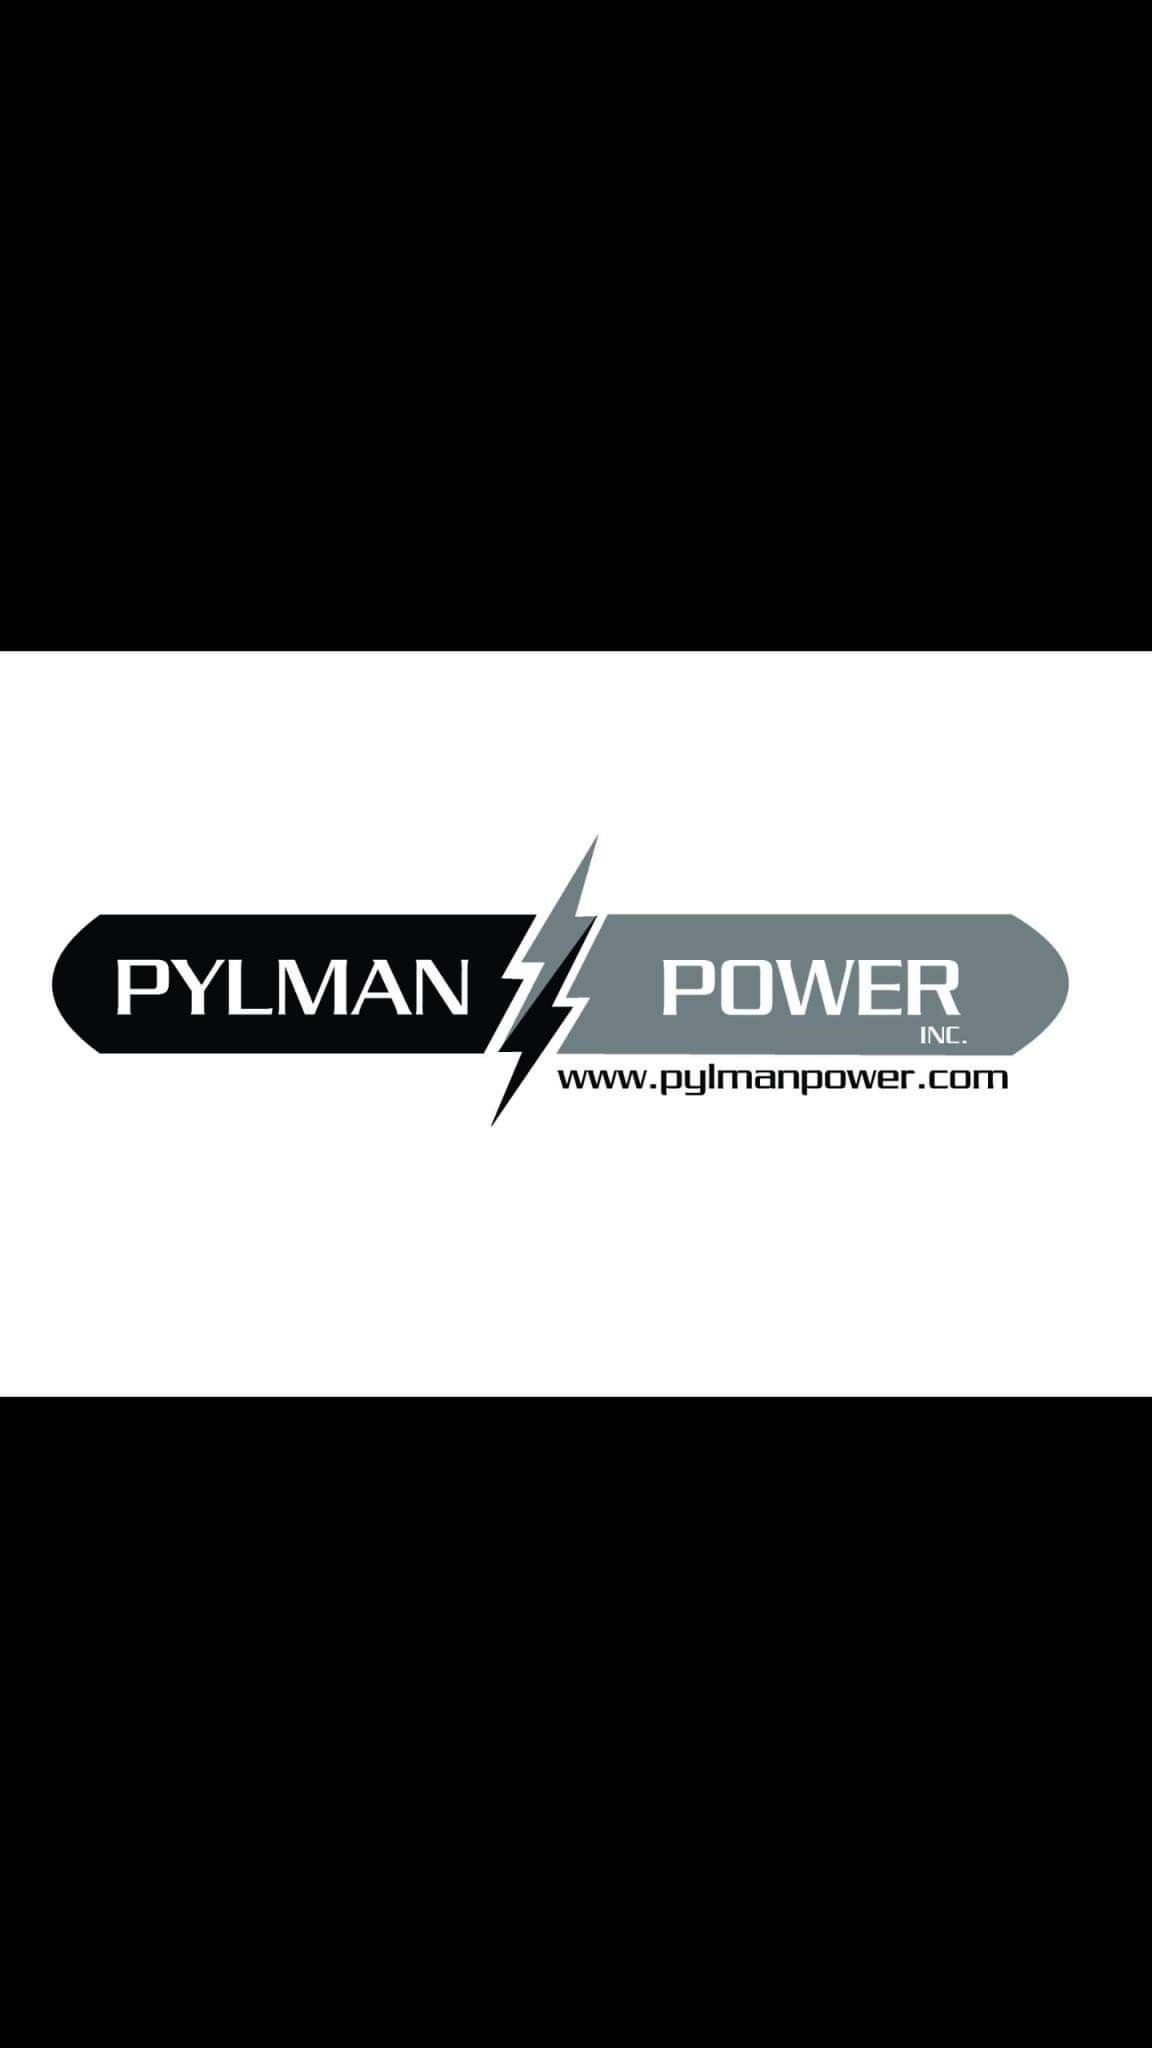 Plyman Power